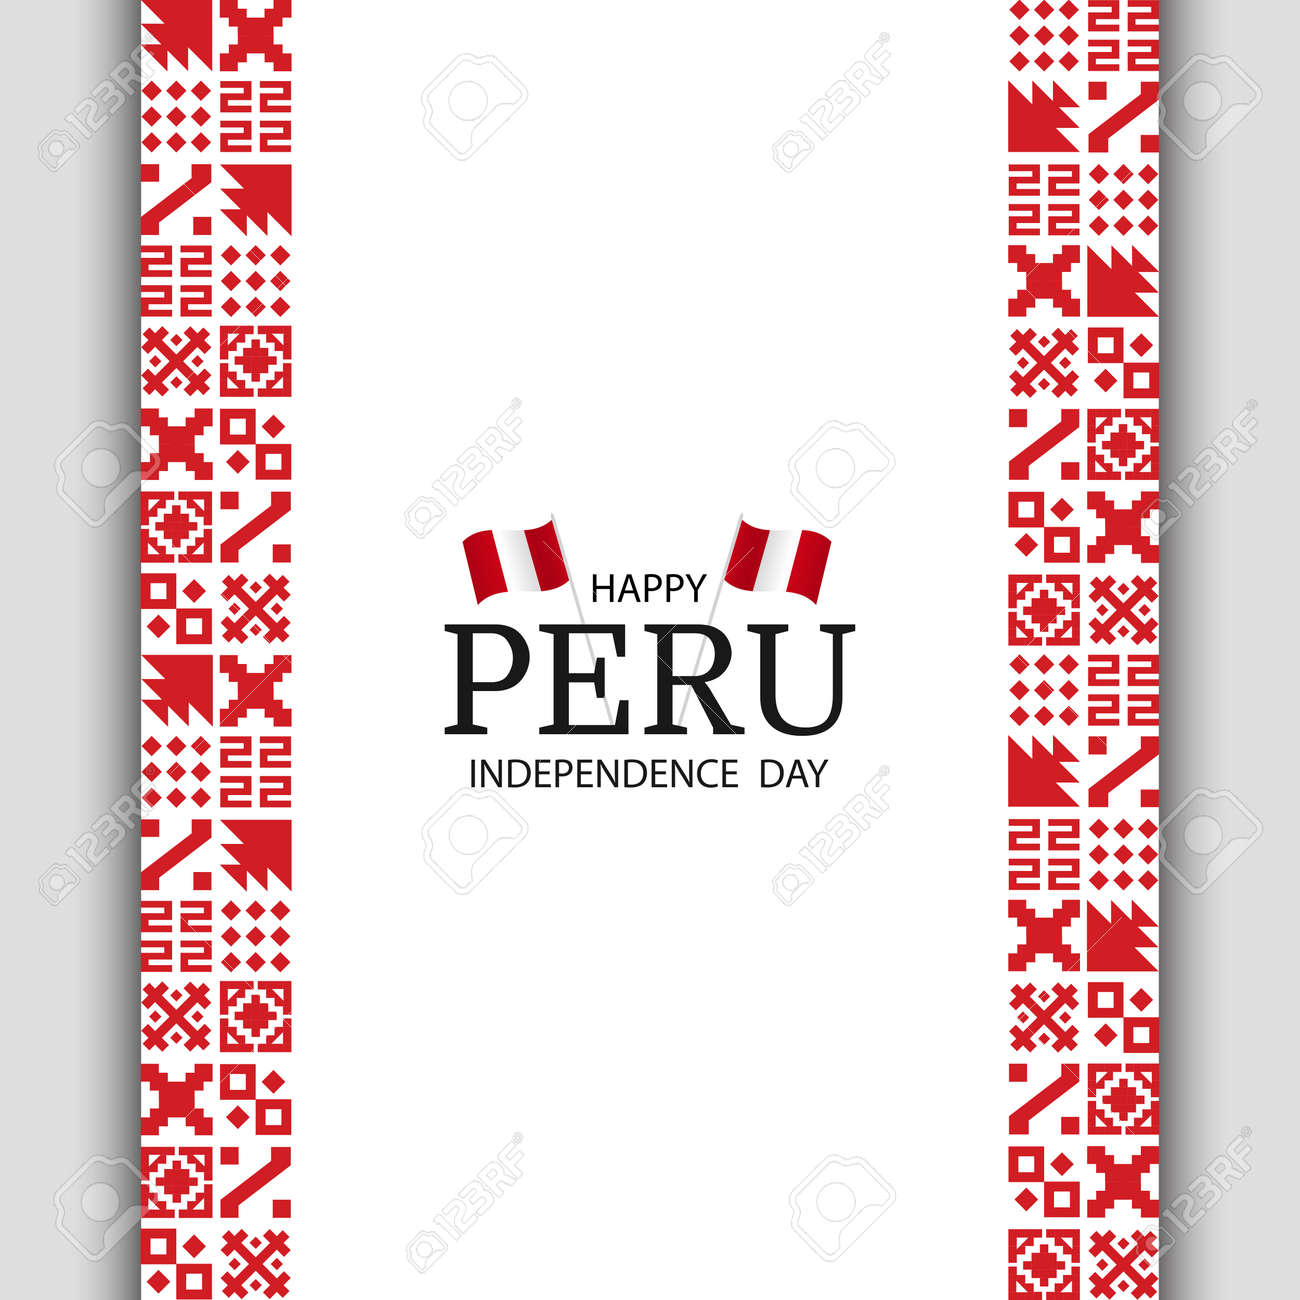 Vector Illustration of Peru Independence Day. National pattern. - 170364557